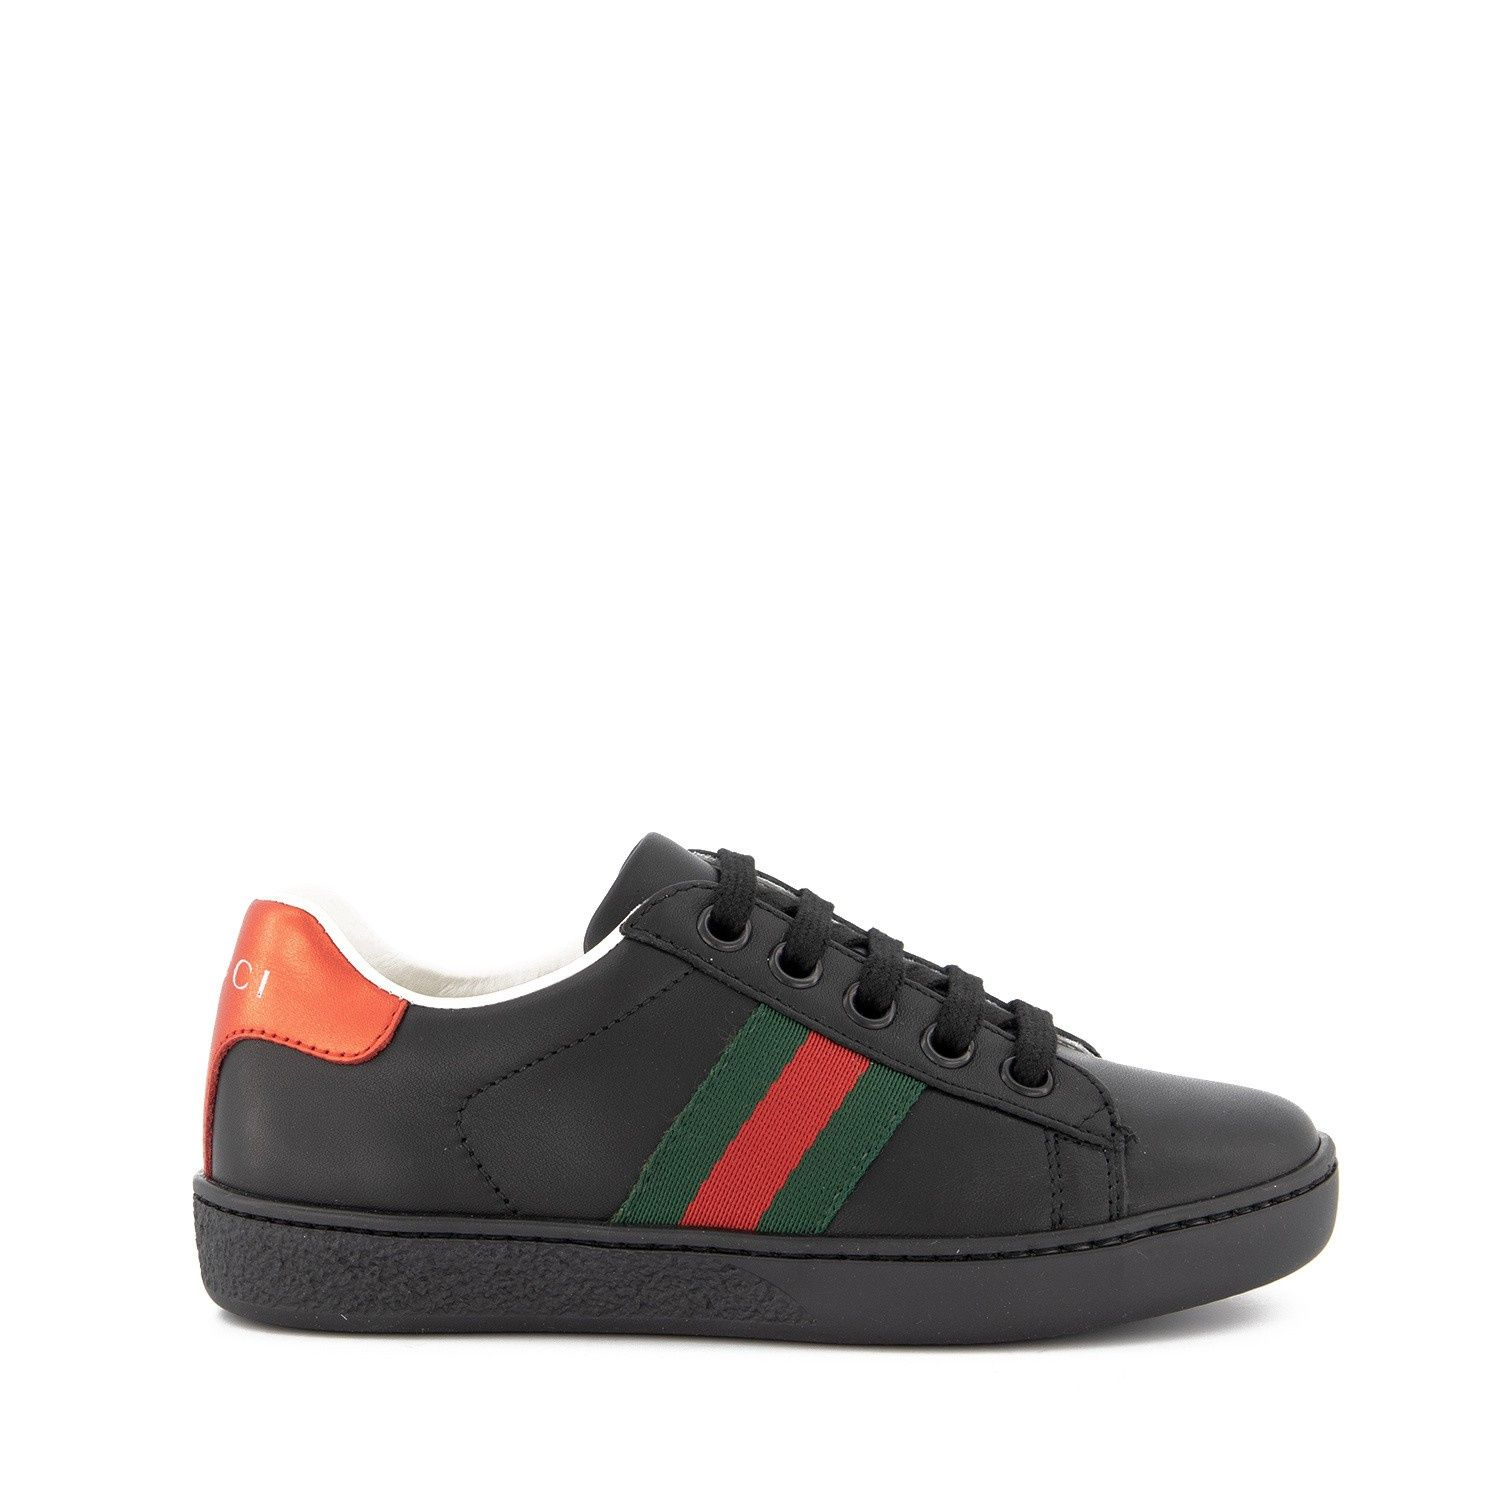 Picture of Gucci 433148 kids sneakers black